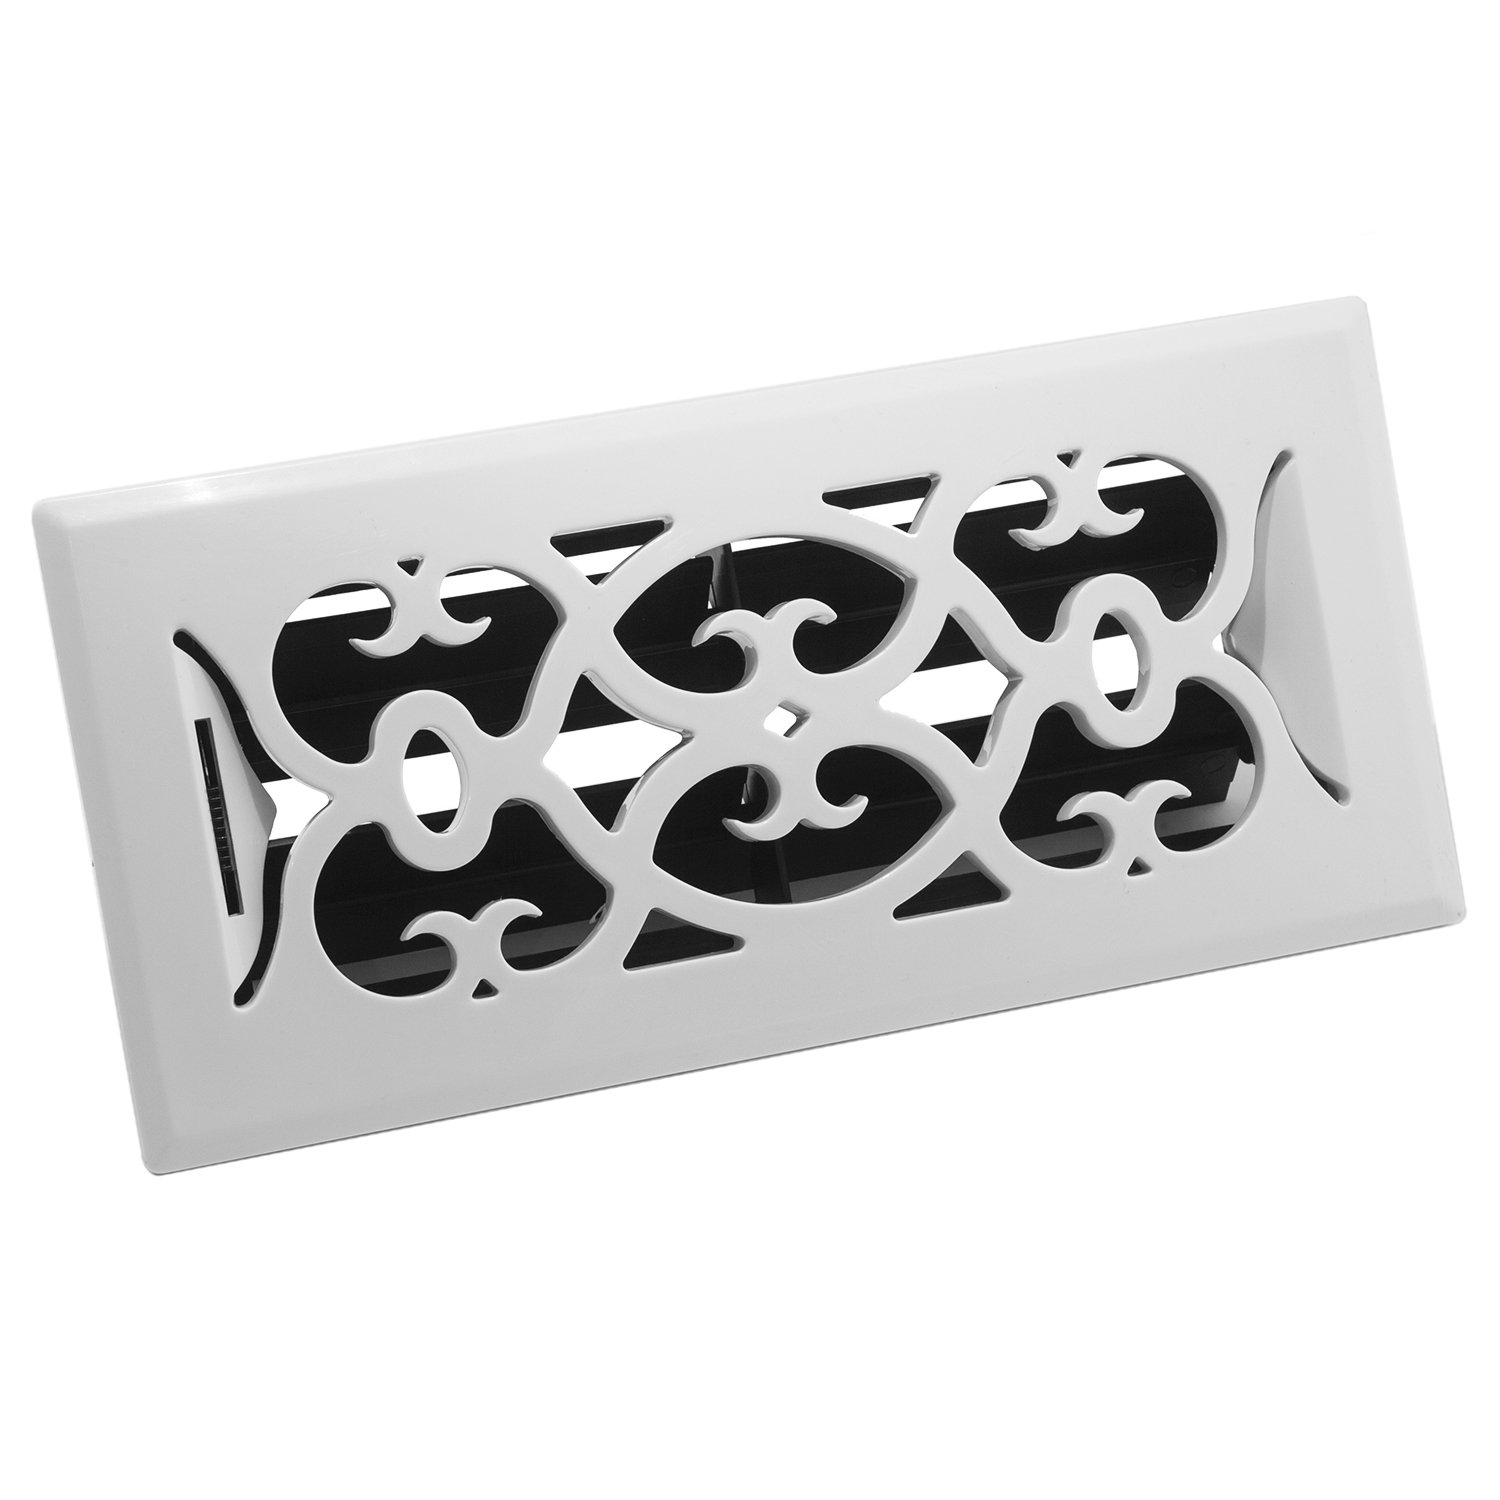 Accord APFRWHV410 Plastic Floor Register with Victorian Design, 4-Inch x 10-Inch(Duct Opening Measurements), White Finish by Accord Ventilation (Image #3)